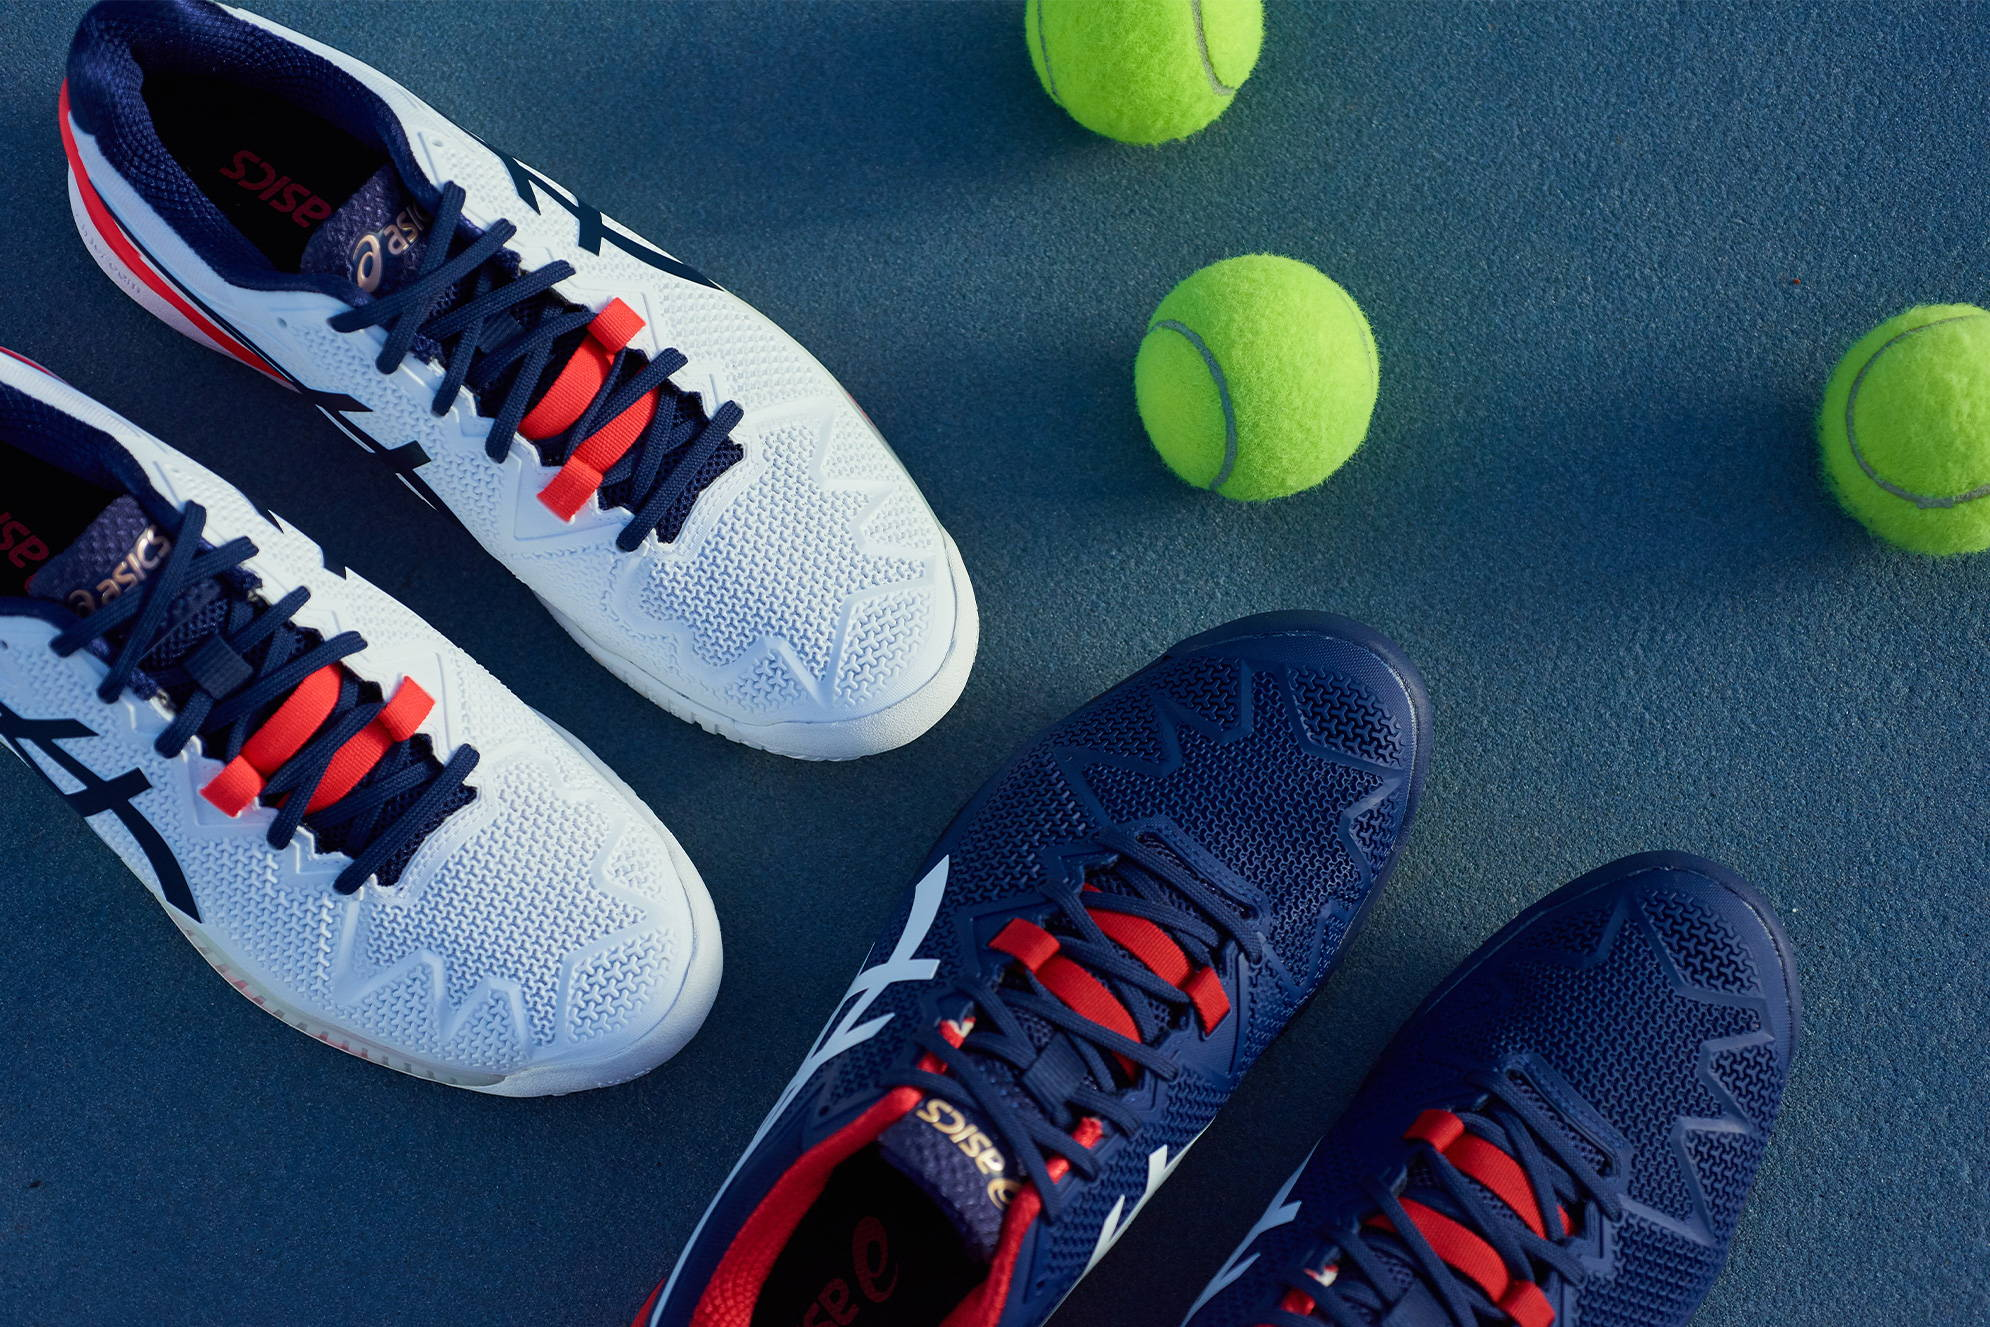 ASICS GEL-Resolution 8 tennis shoes on a court with tennis balls